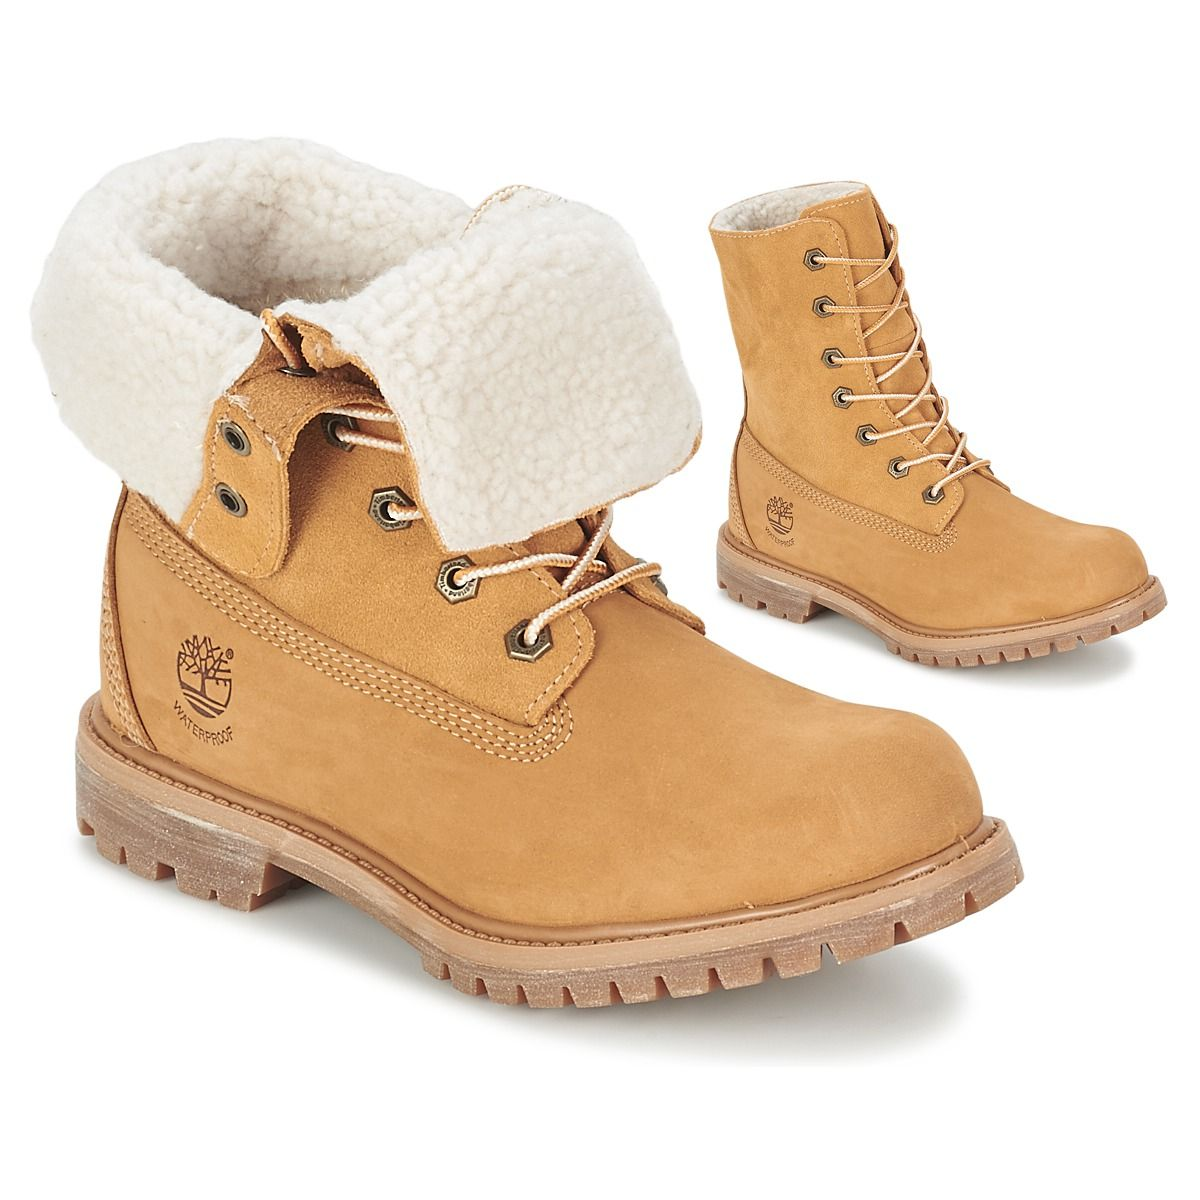 Womens timberland teddy fleece roll down boots | Timberland, Winter  collection and Cold weather